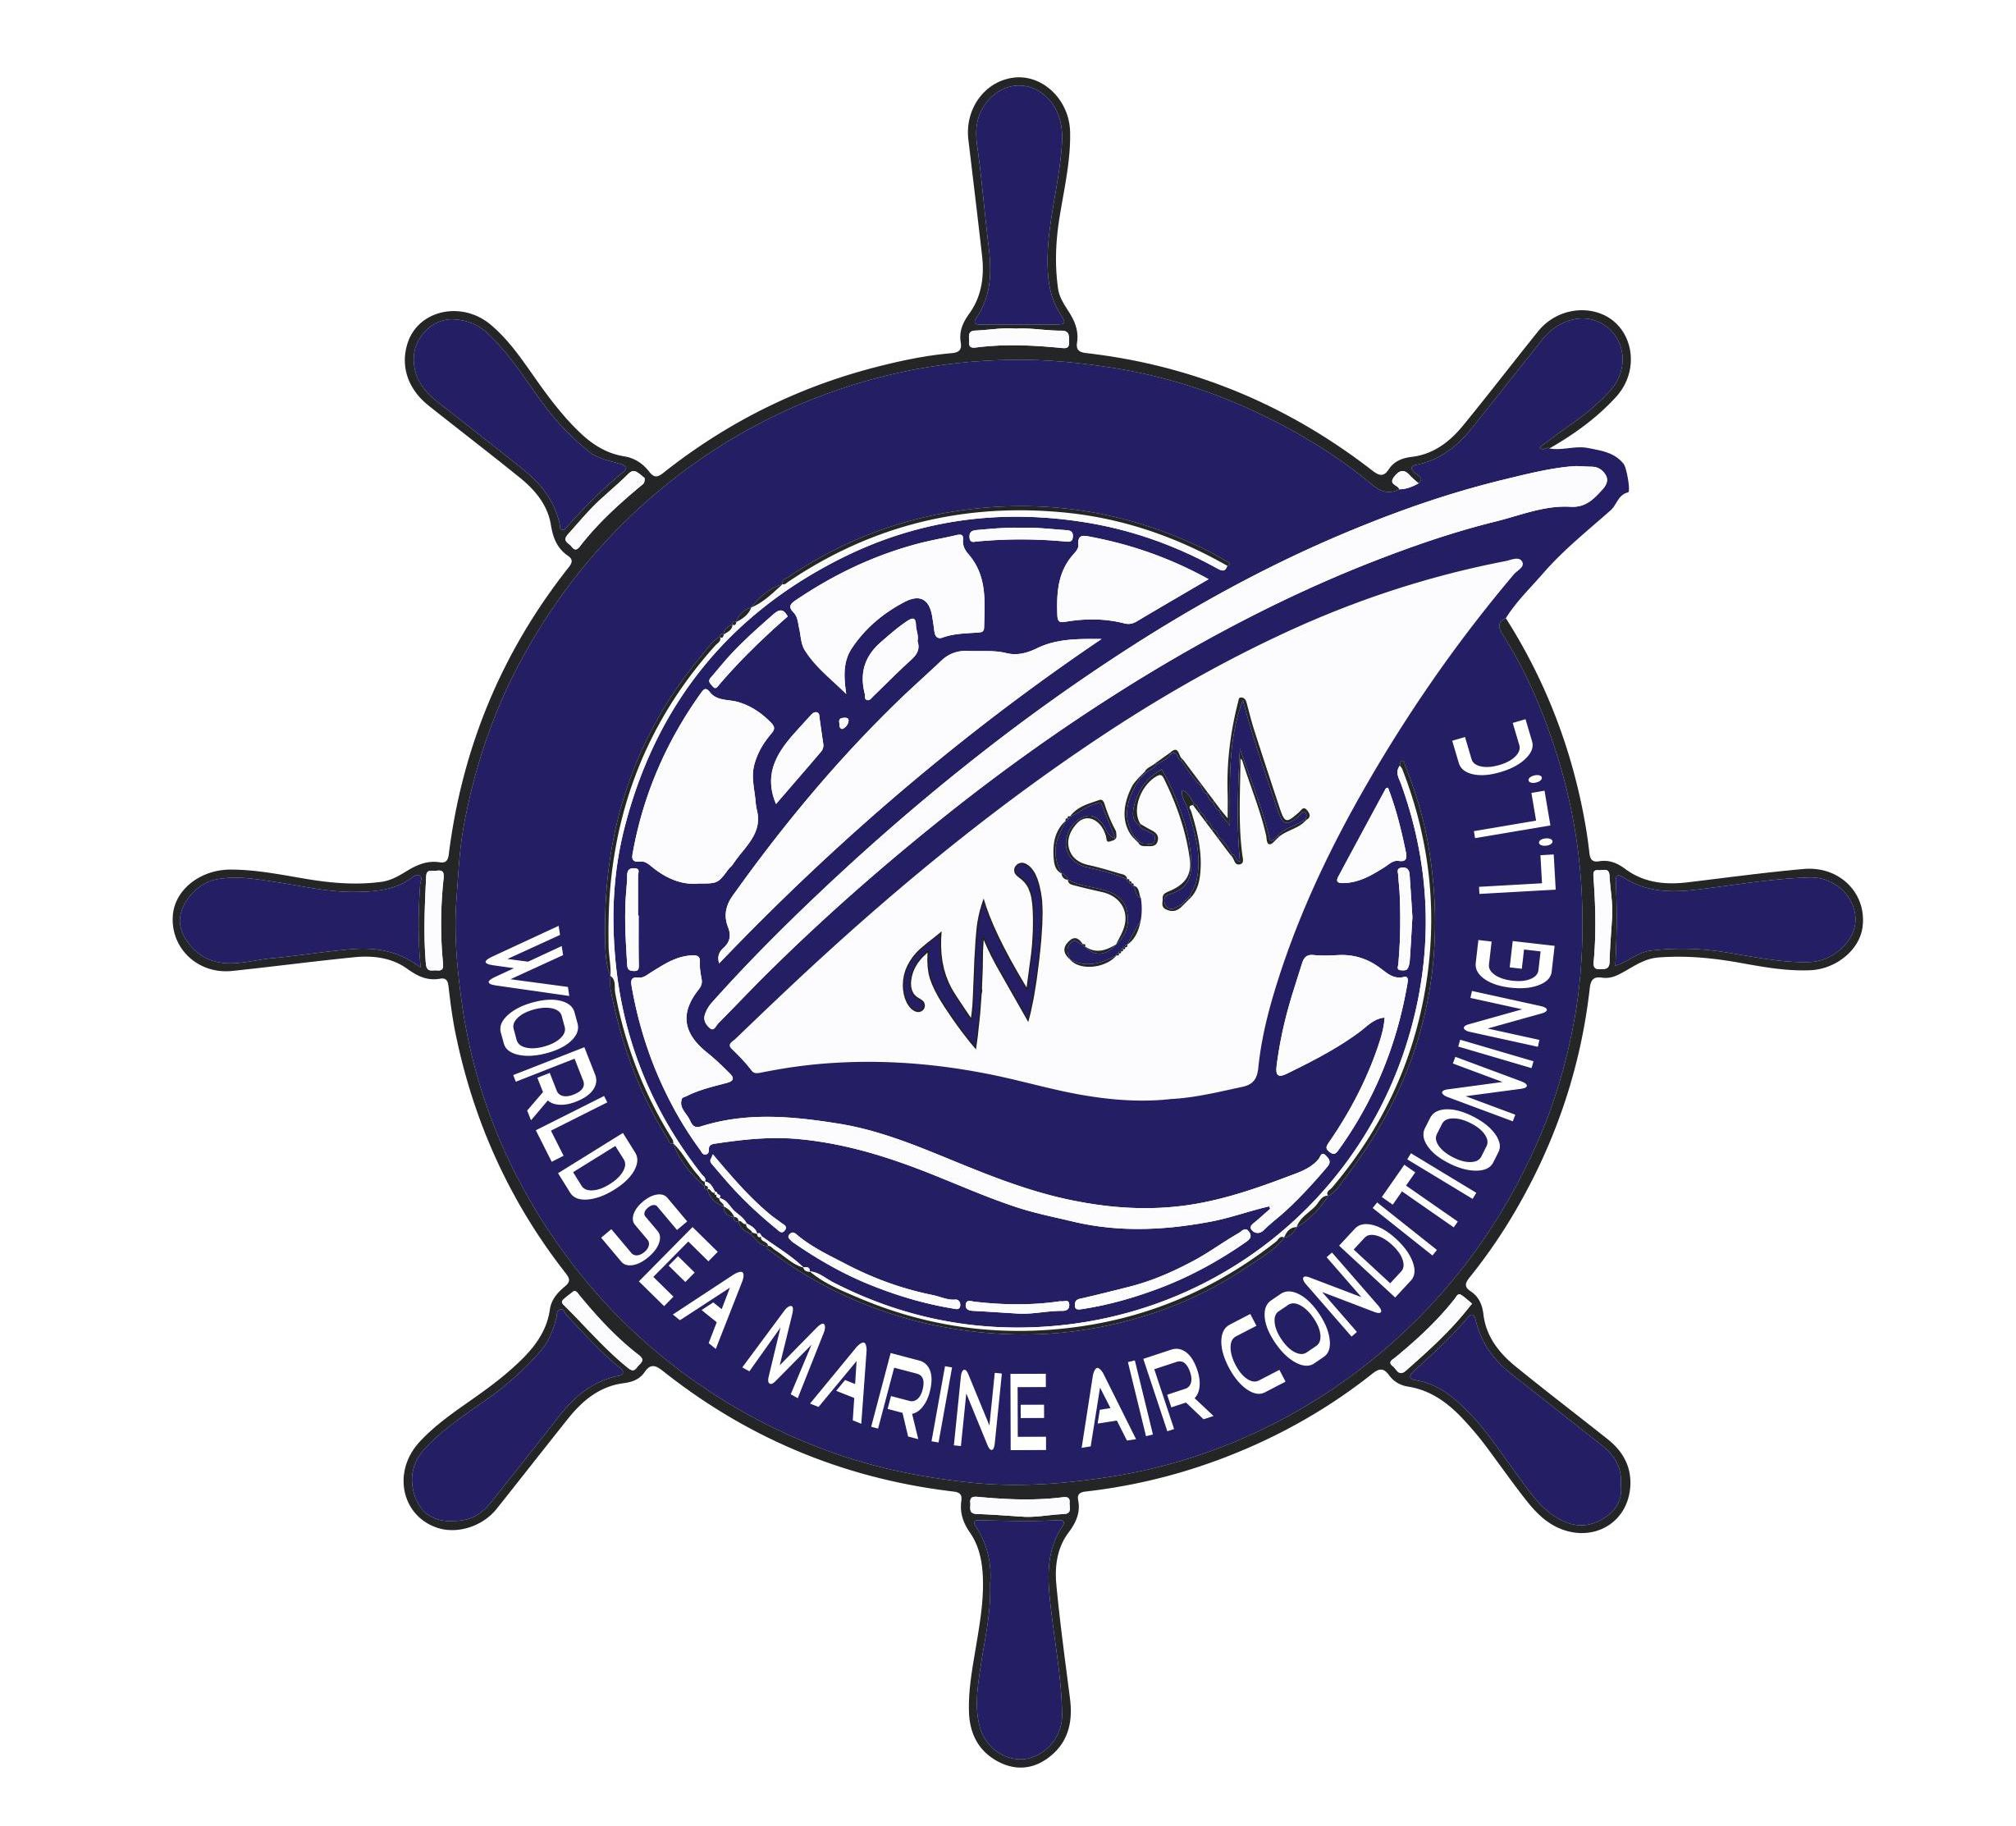 World Sea Marine Air Conditioning LLC